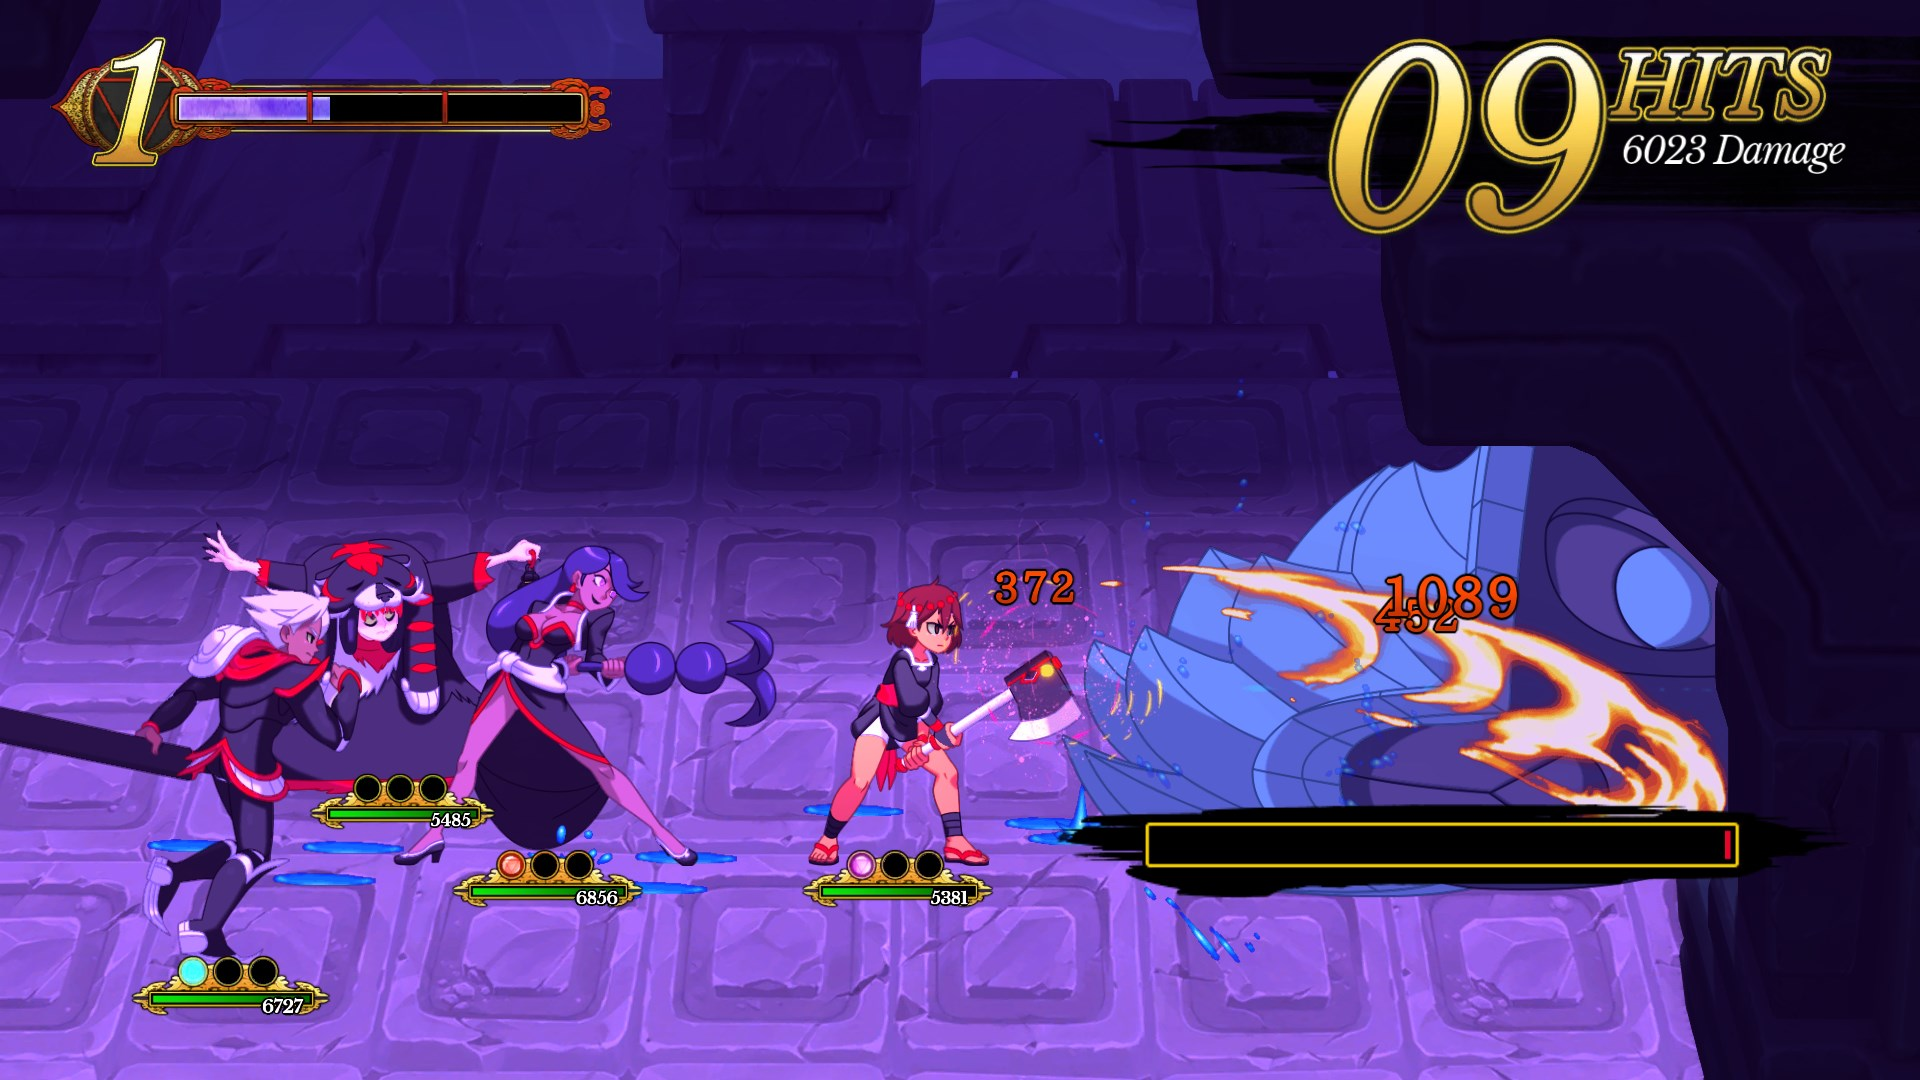 Indivisible Launches for PC, PS4, and XB1 in October, Switch